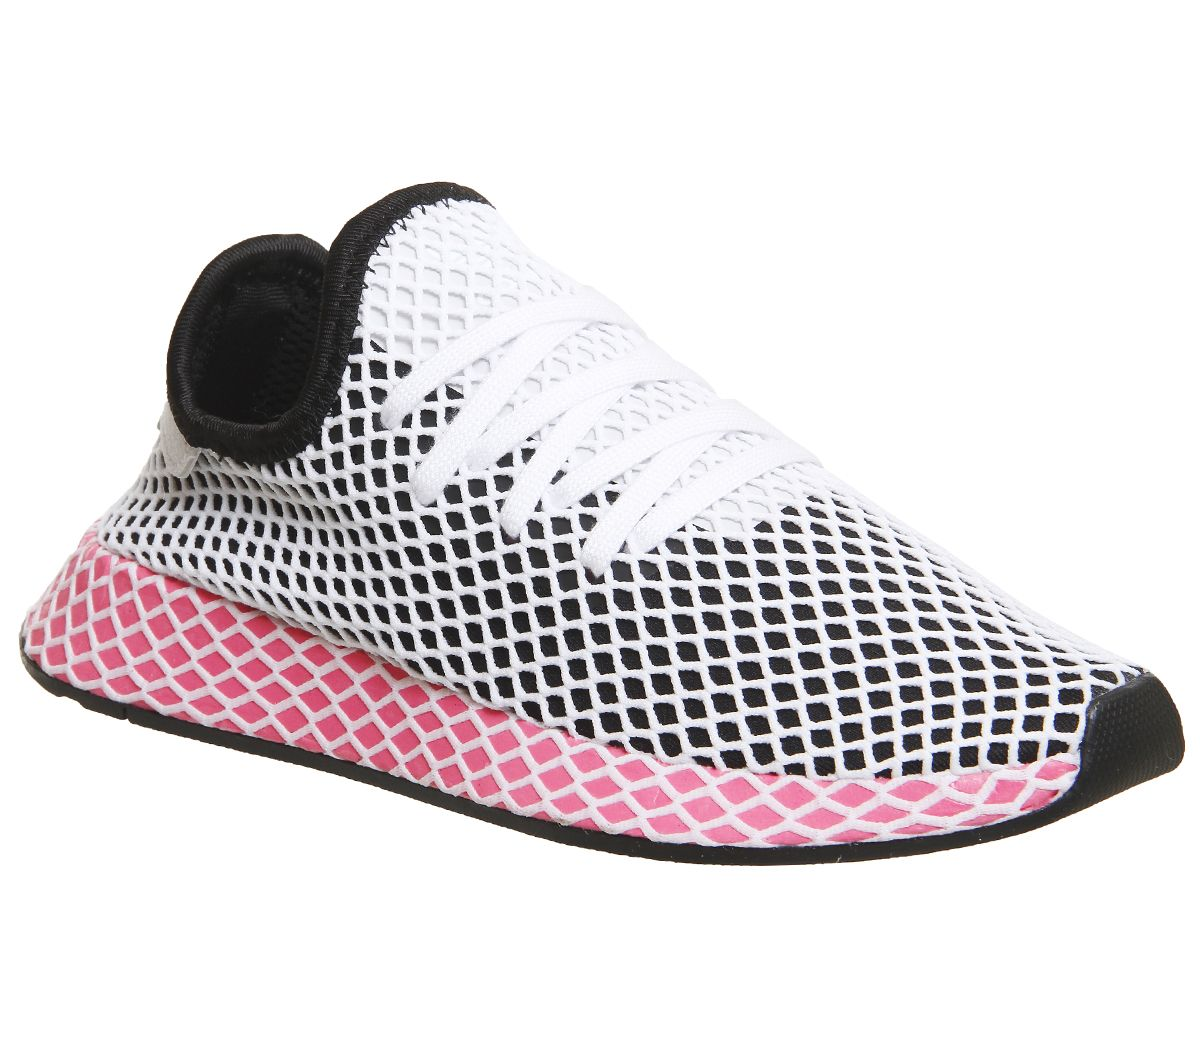 7620fc321 adidas Deerupt Trainers Core Black Chalk Pink - Unisex Sports